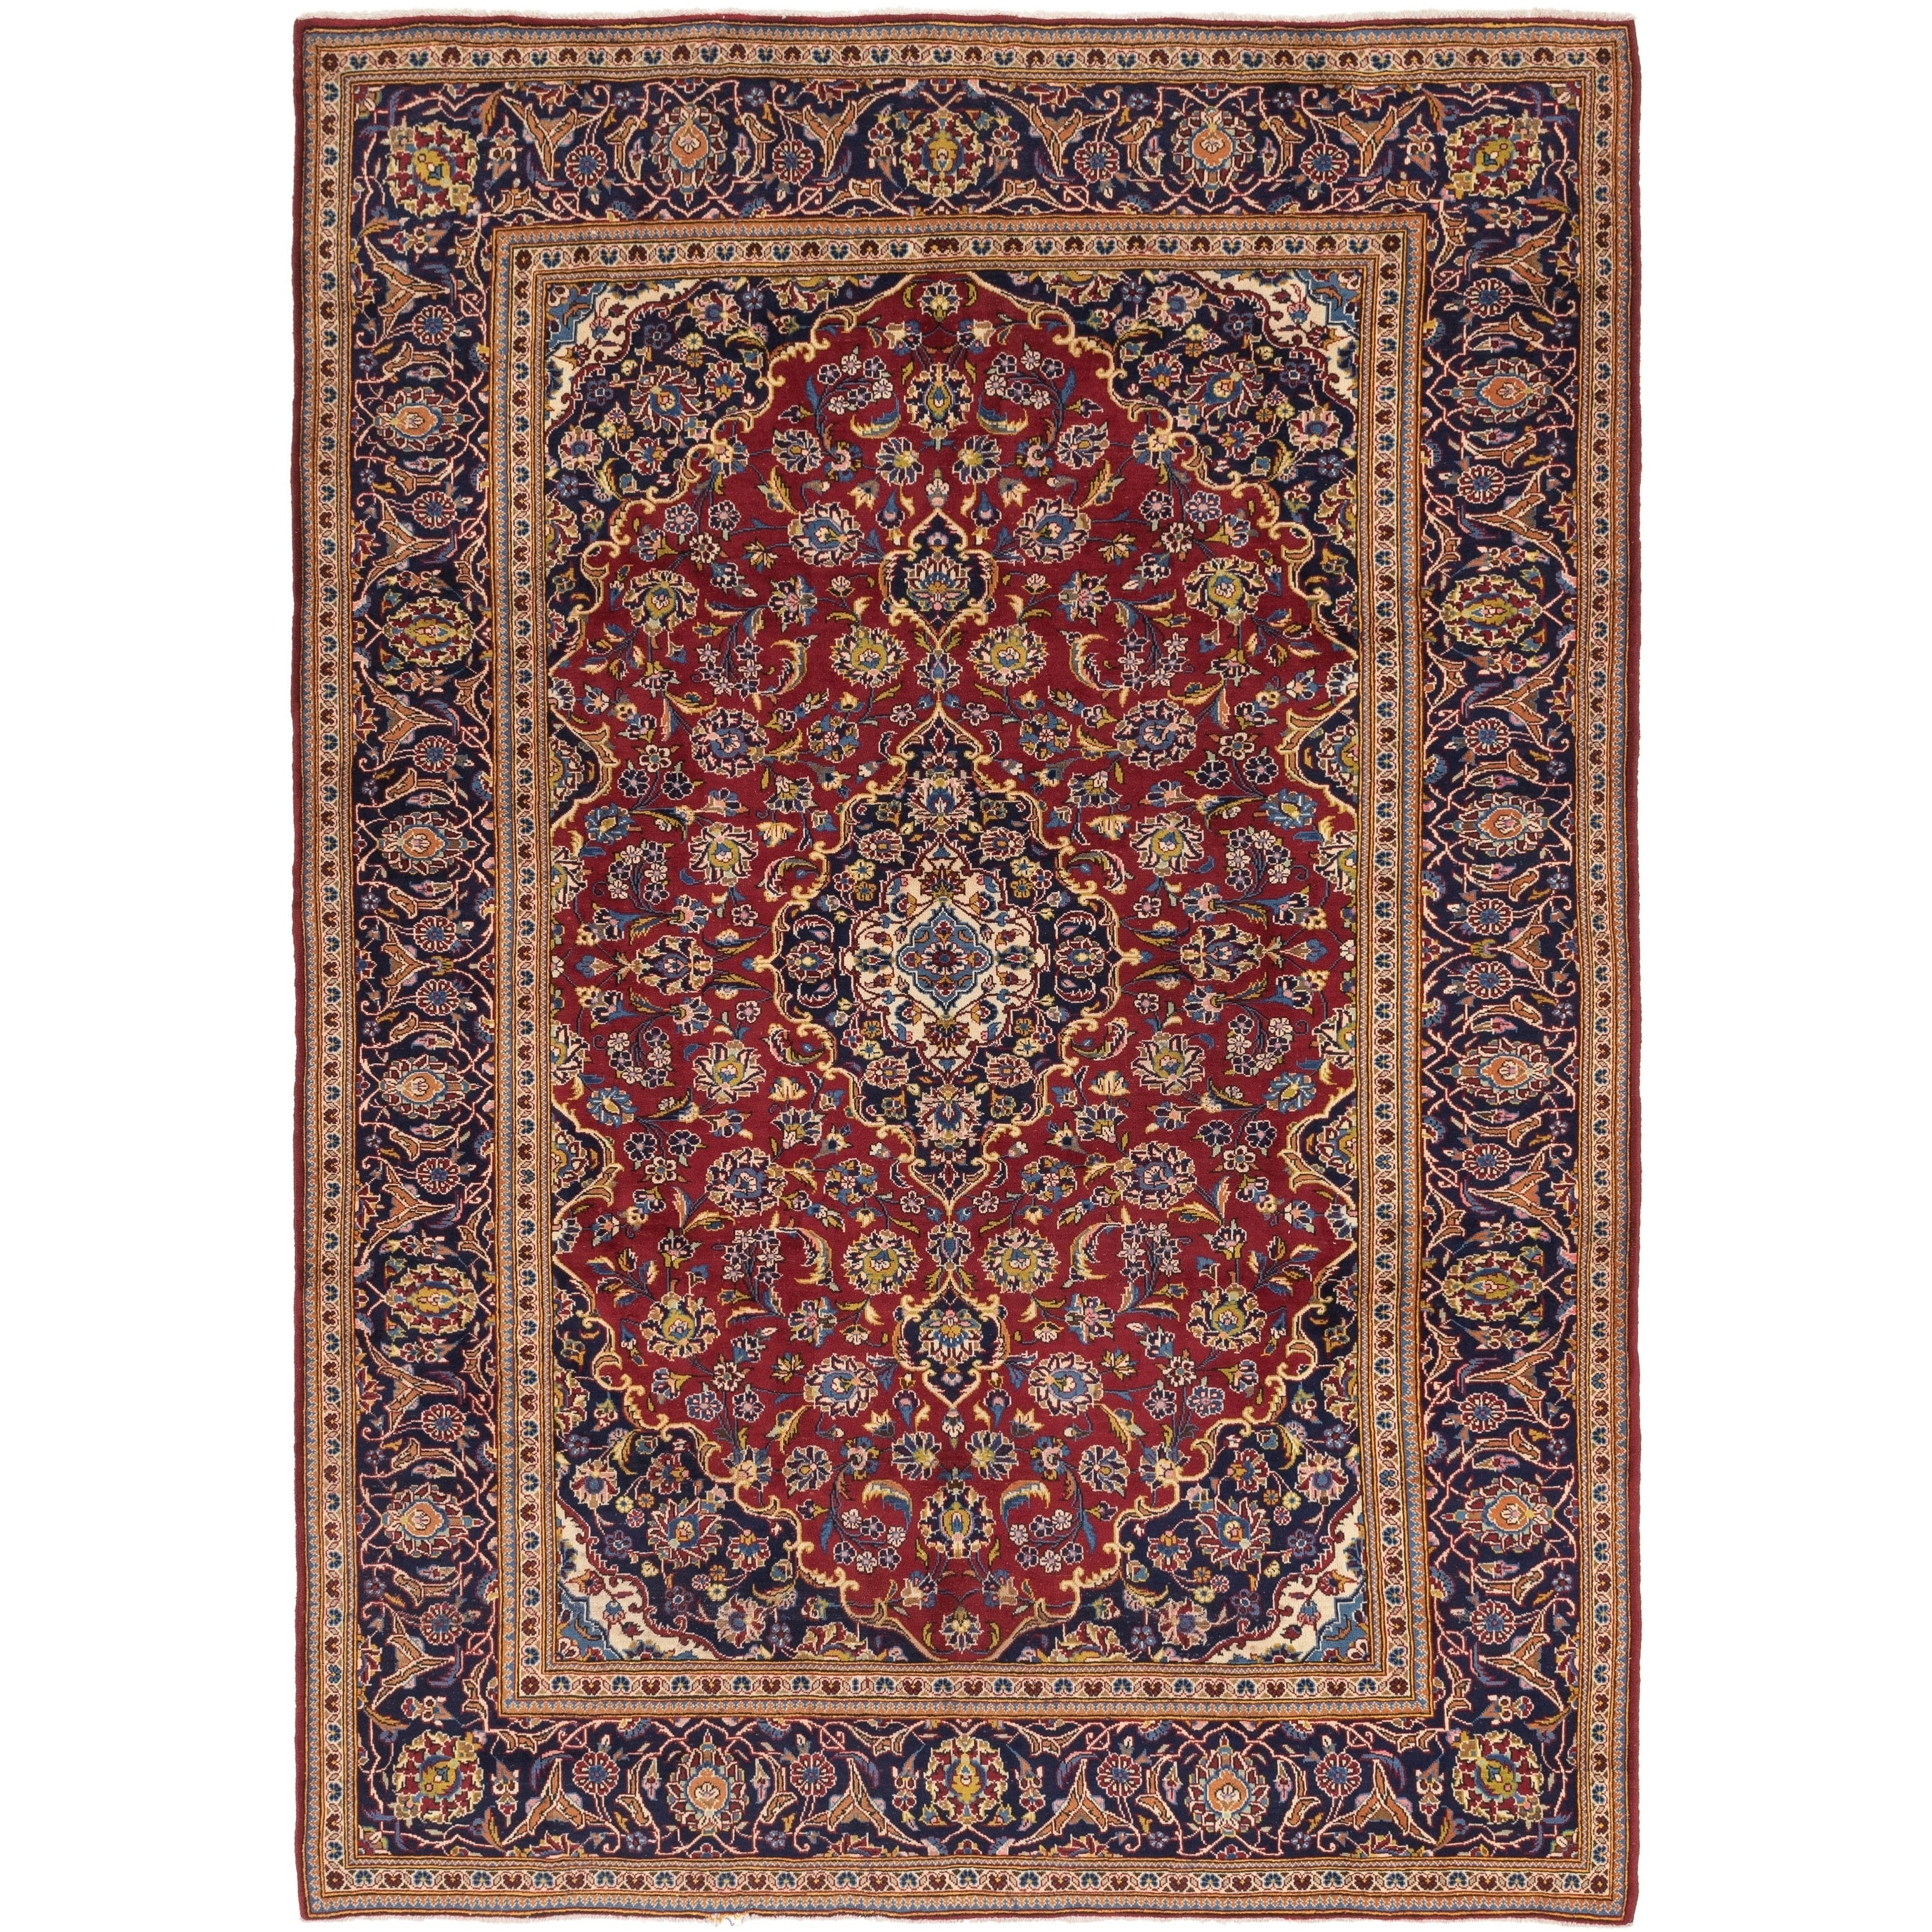 Hand Knotted Kashan Wool Area Rug - 8 x 11 4 (Red - 8 x 11 4)